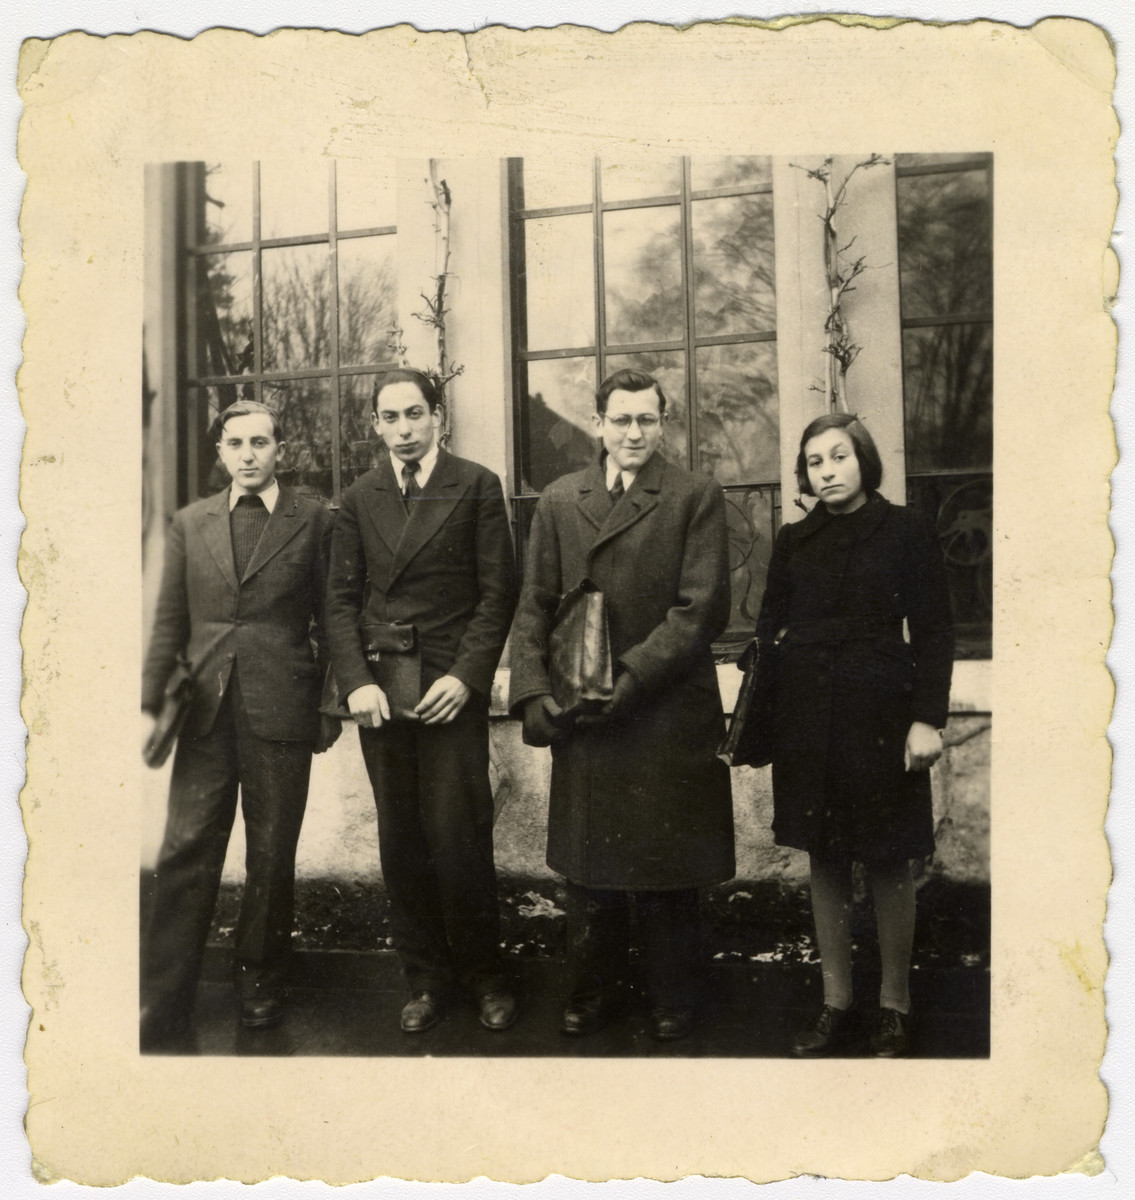 Group portrait of four students from Dr. Stern's children's home; they attended local schools.  Ruth Schwarzhaupt stands at the right along with Ernst Sternfels at her left.